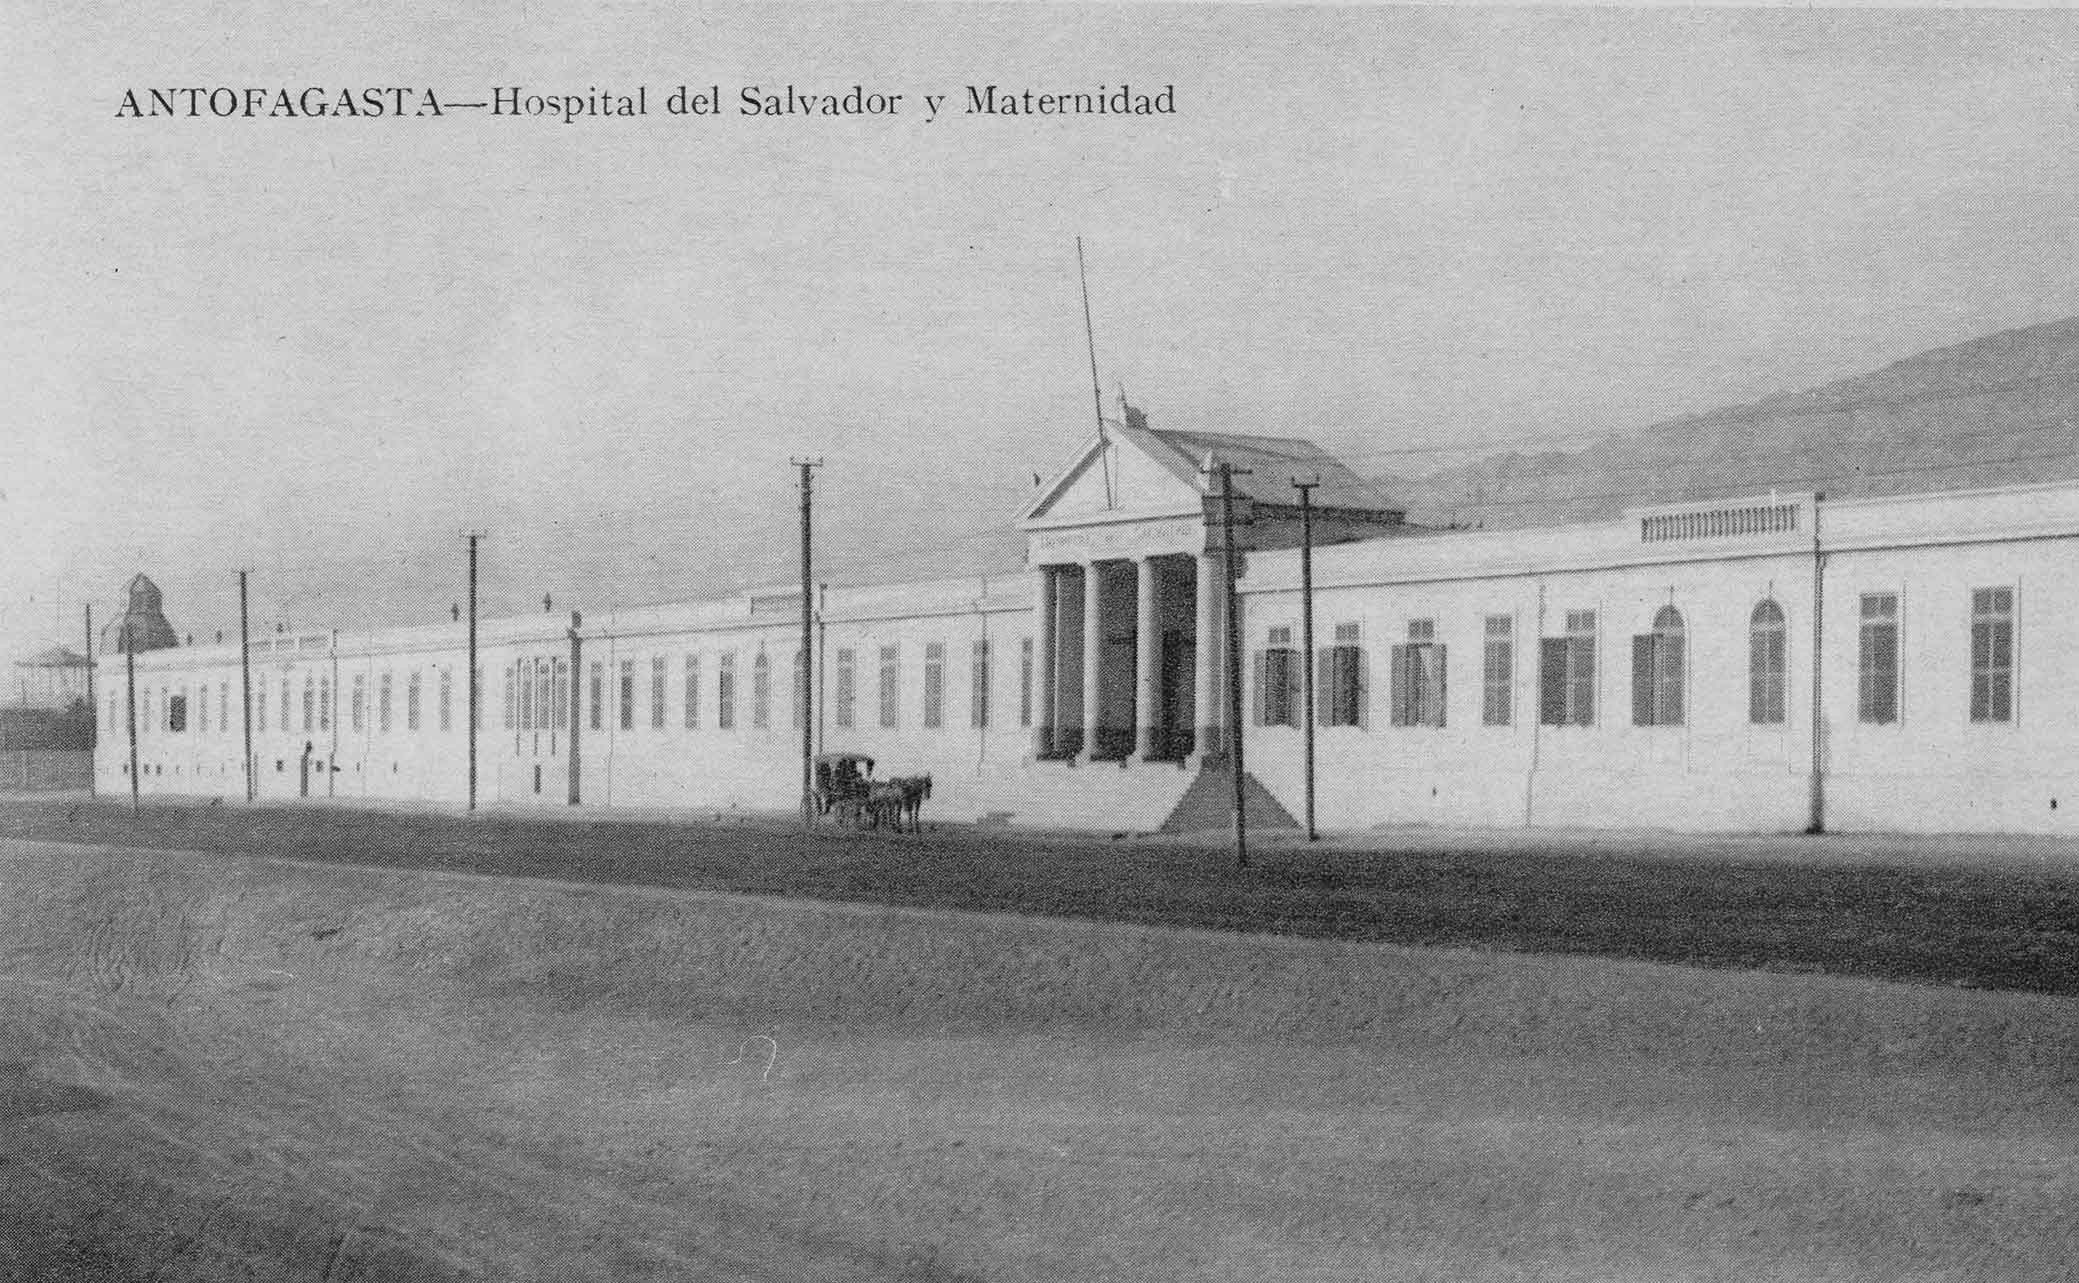 Enterreno - Fotos históricas de chile - fotos antiguas de Chile - Hospital del Salvador de Antofagasta, ca. 1910